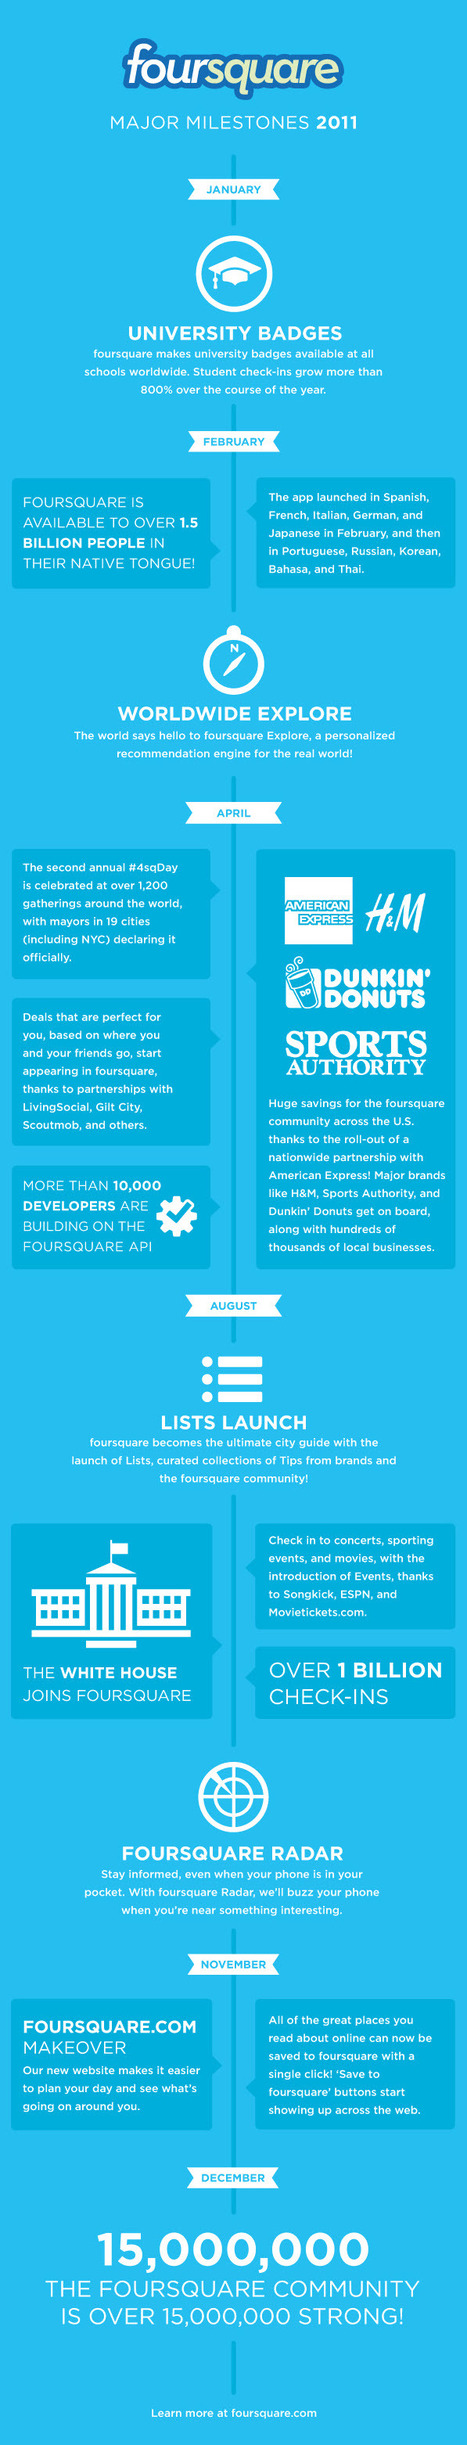 Is Foursquare a Waste of Time? - Plus Infographic | Digital Communication and Innovations | Scoop.it